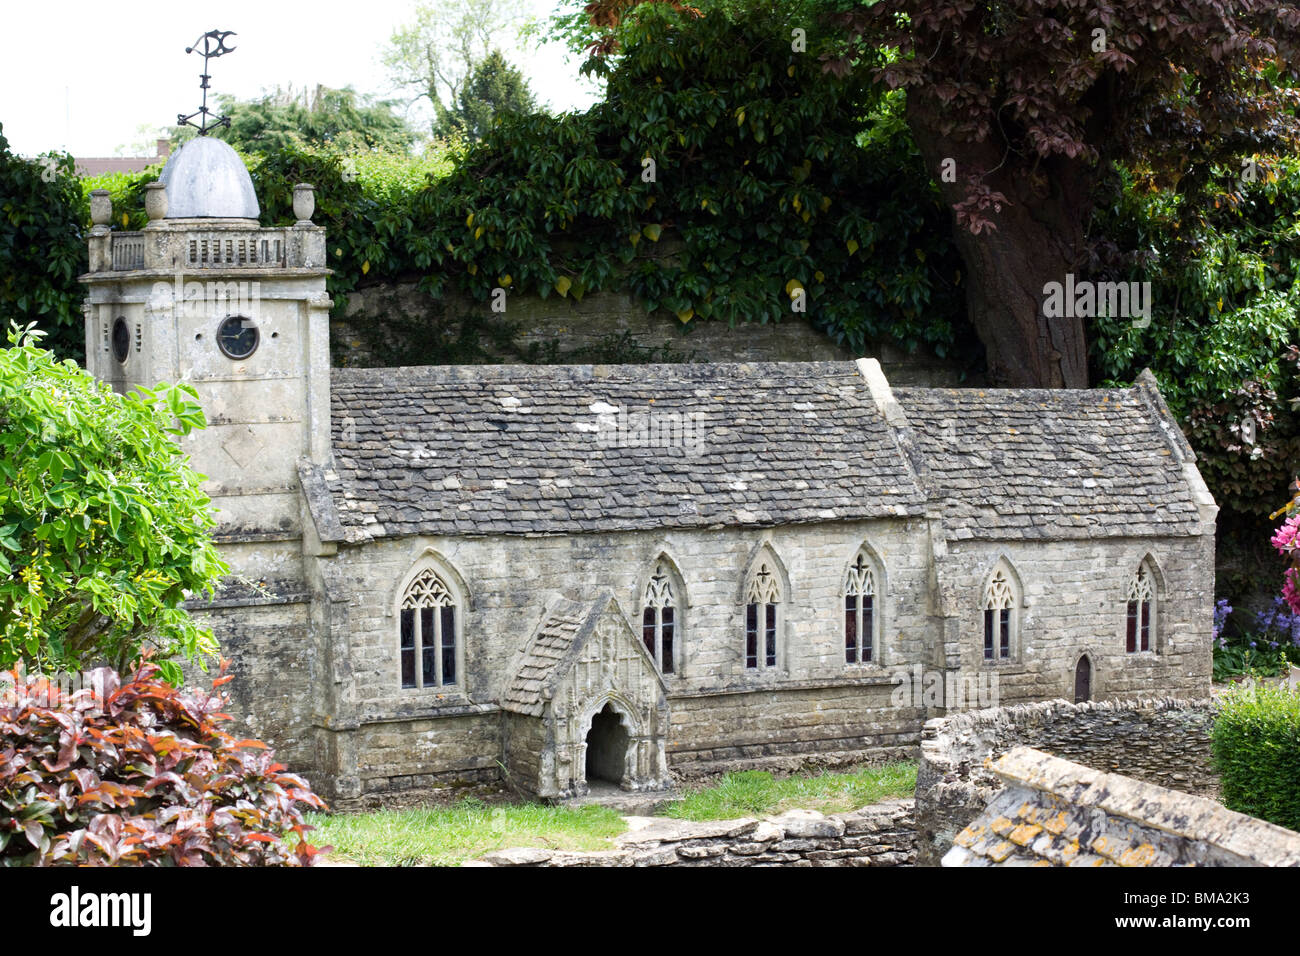 Miniature Village made of Stone at Bourton on the Water Cotswolds - Stock Image